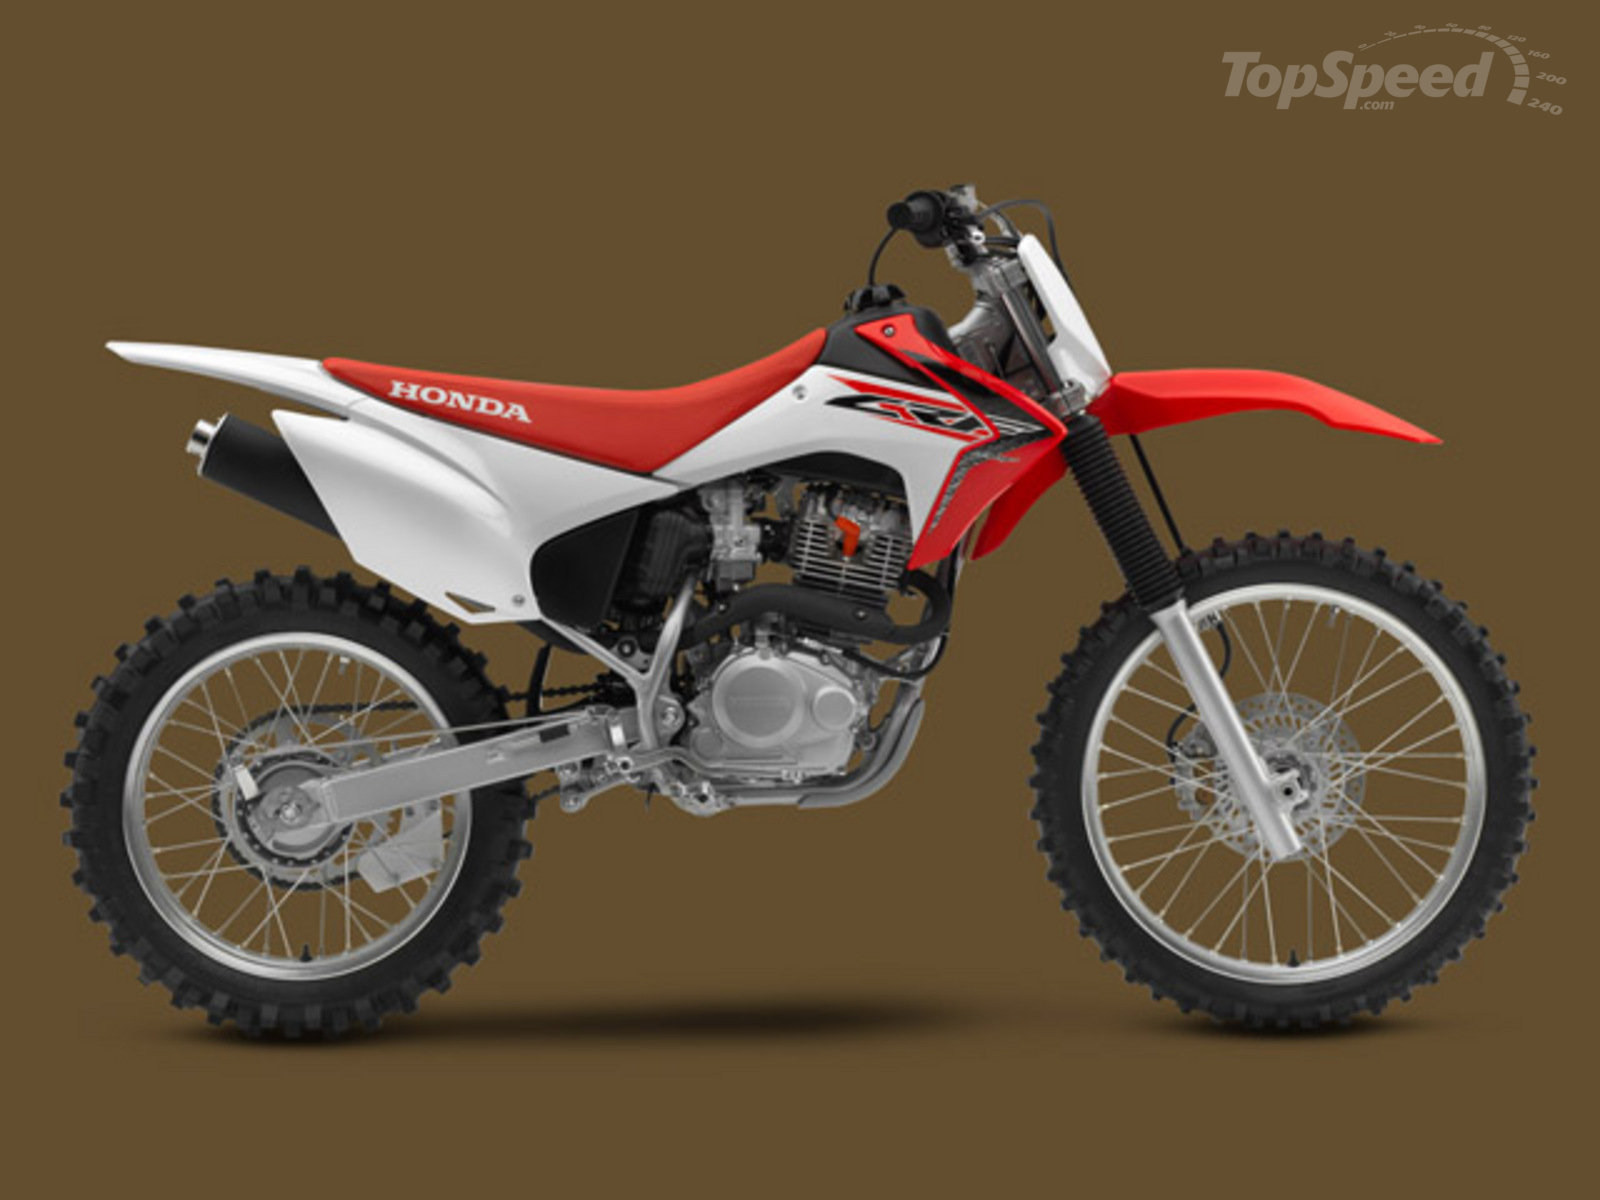 2015 Honda Crf230f Review Top Speed